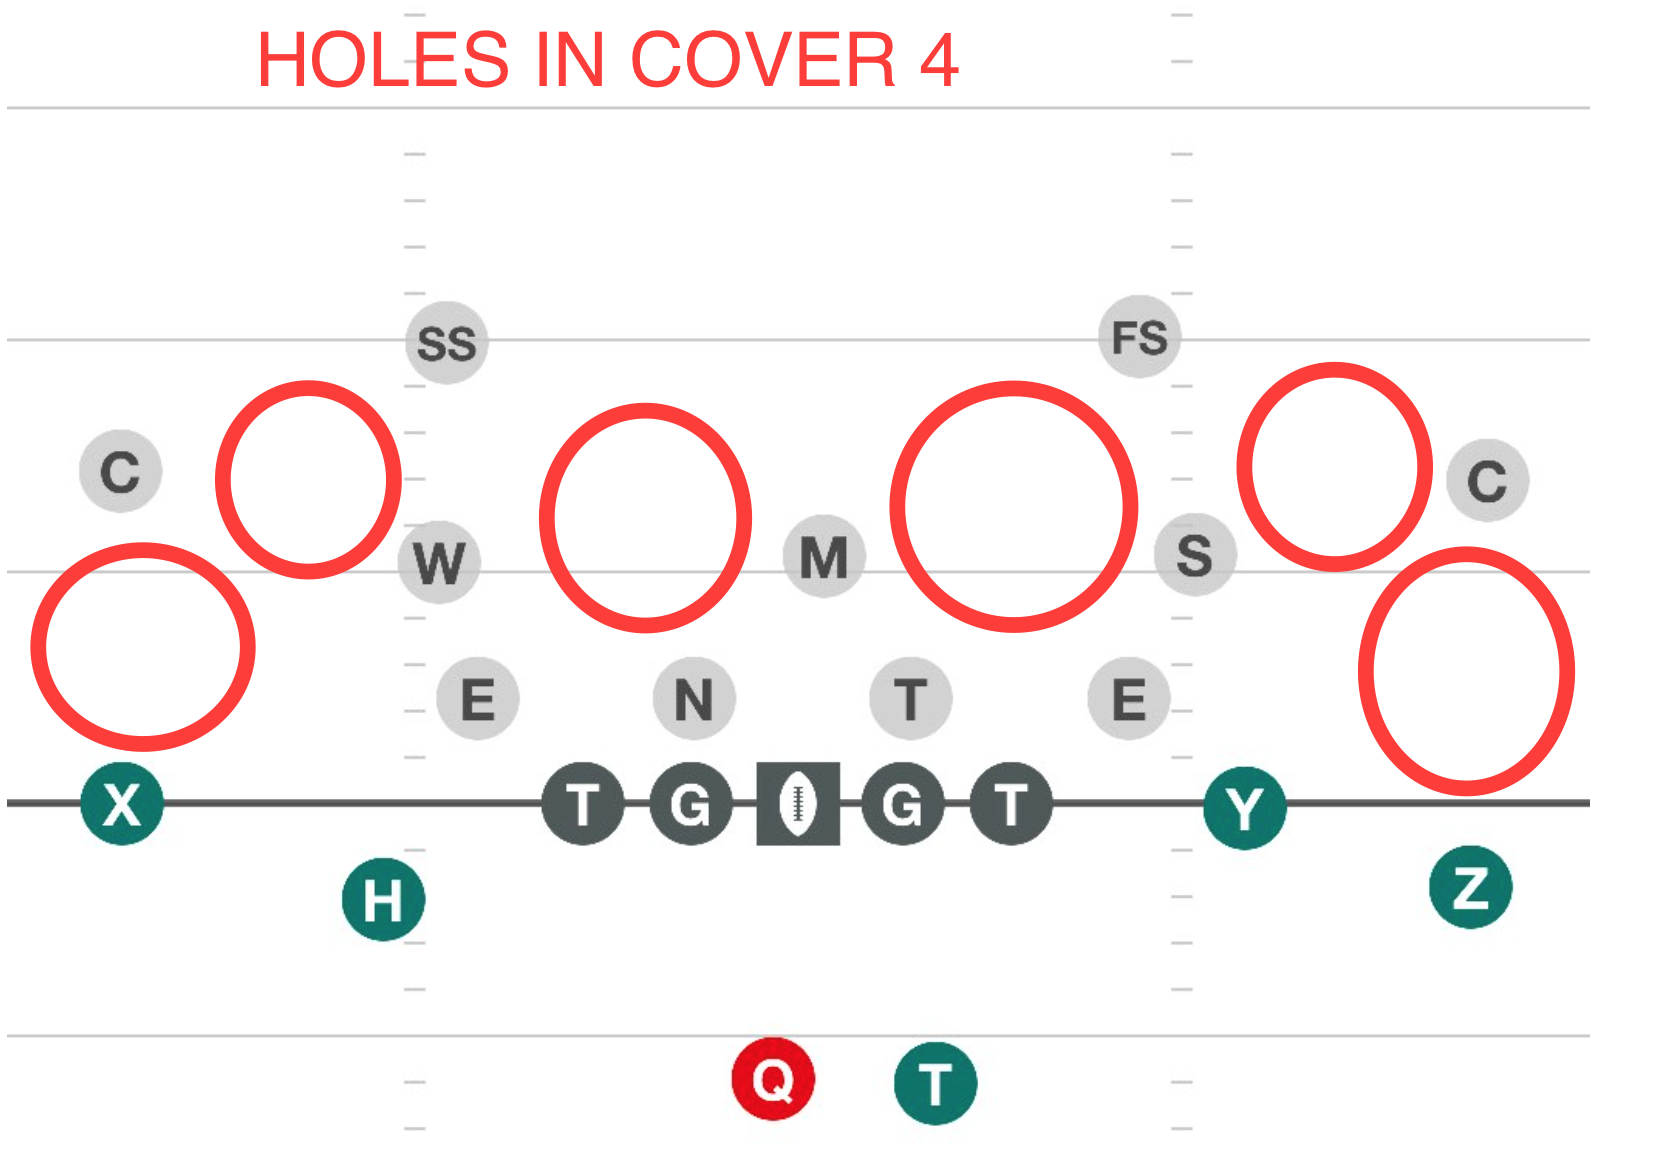 Holes in Cover 4